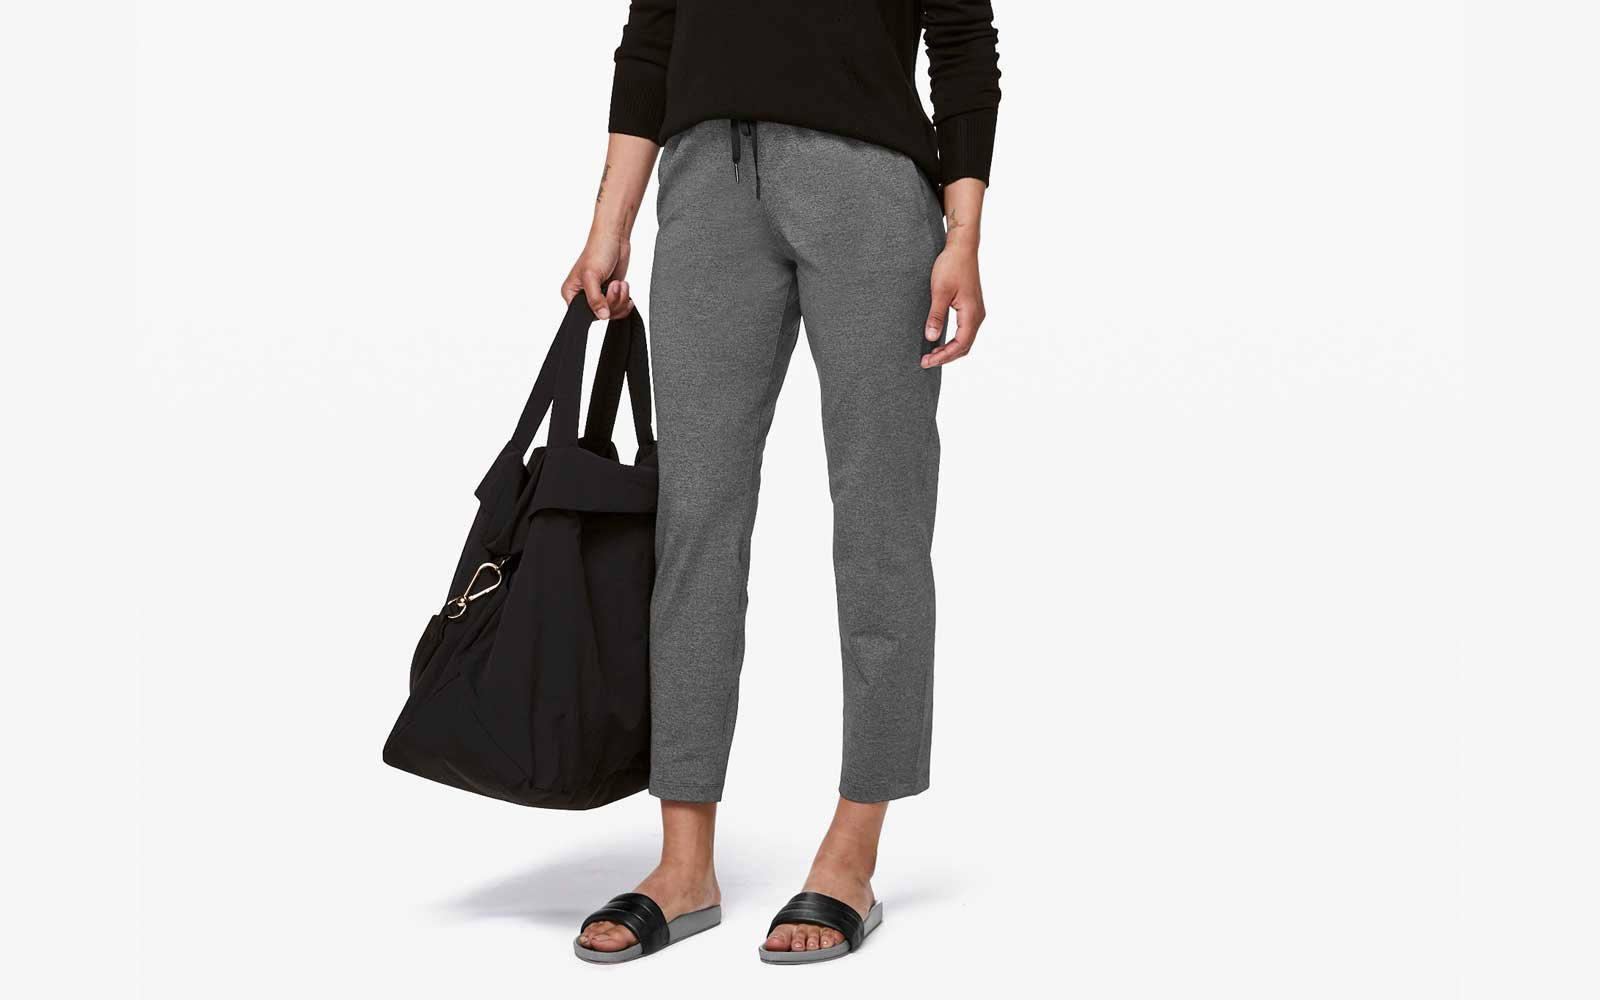 lululemon womens travel pants